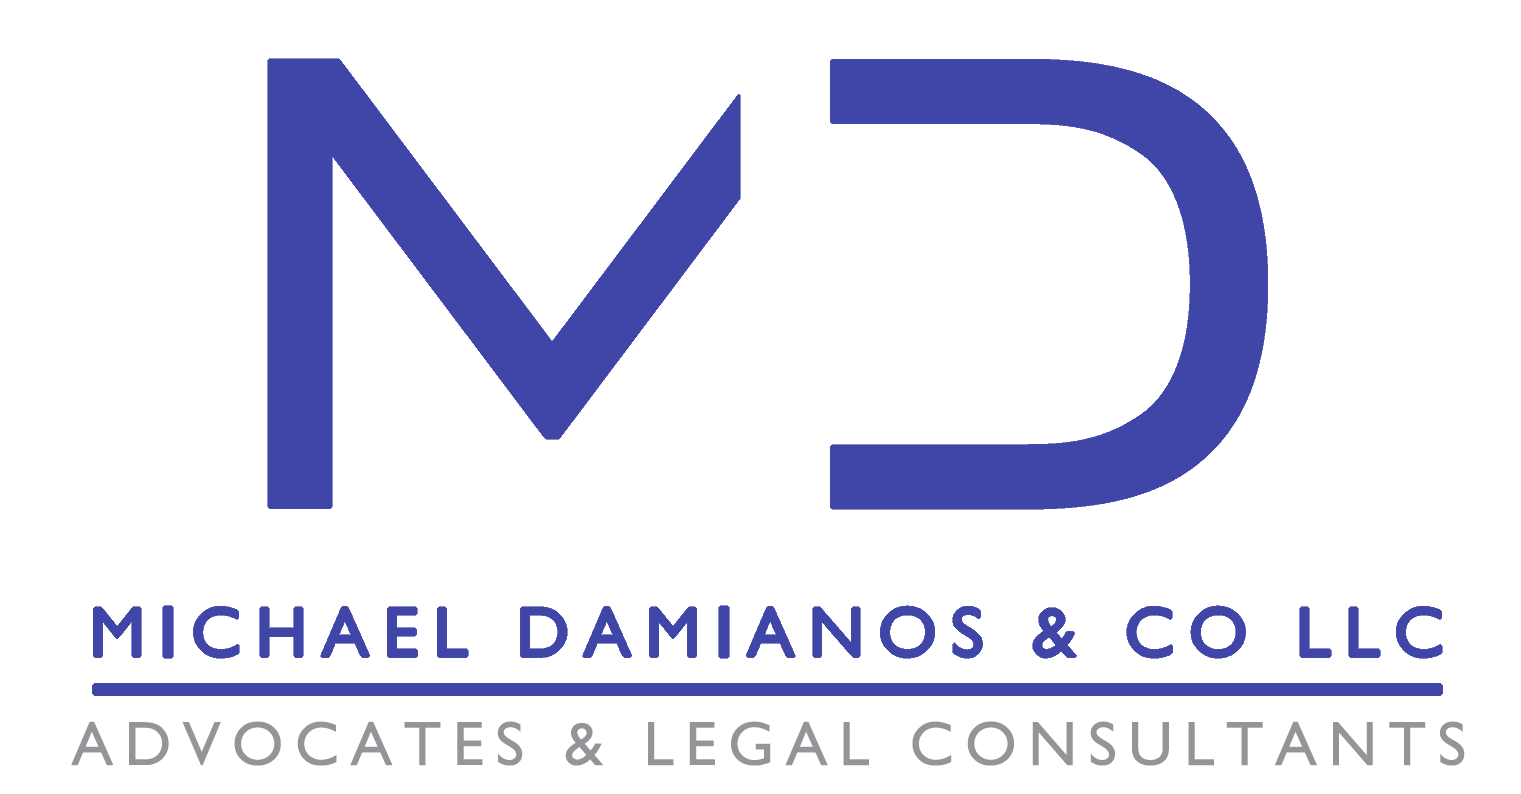 Michael Damianos & Co LLC